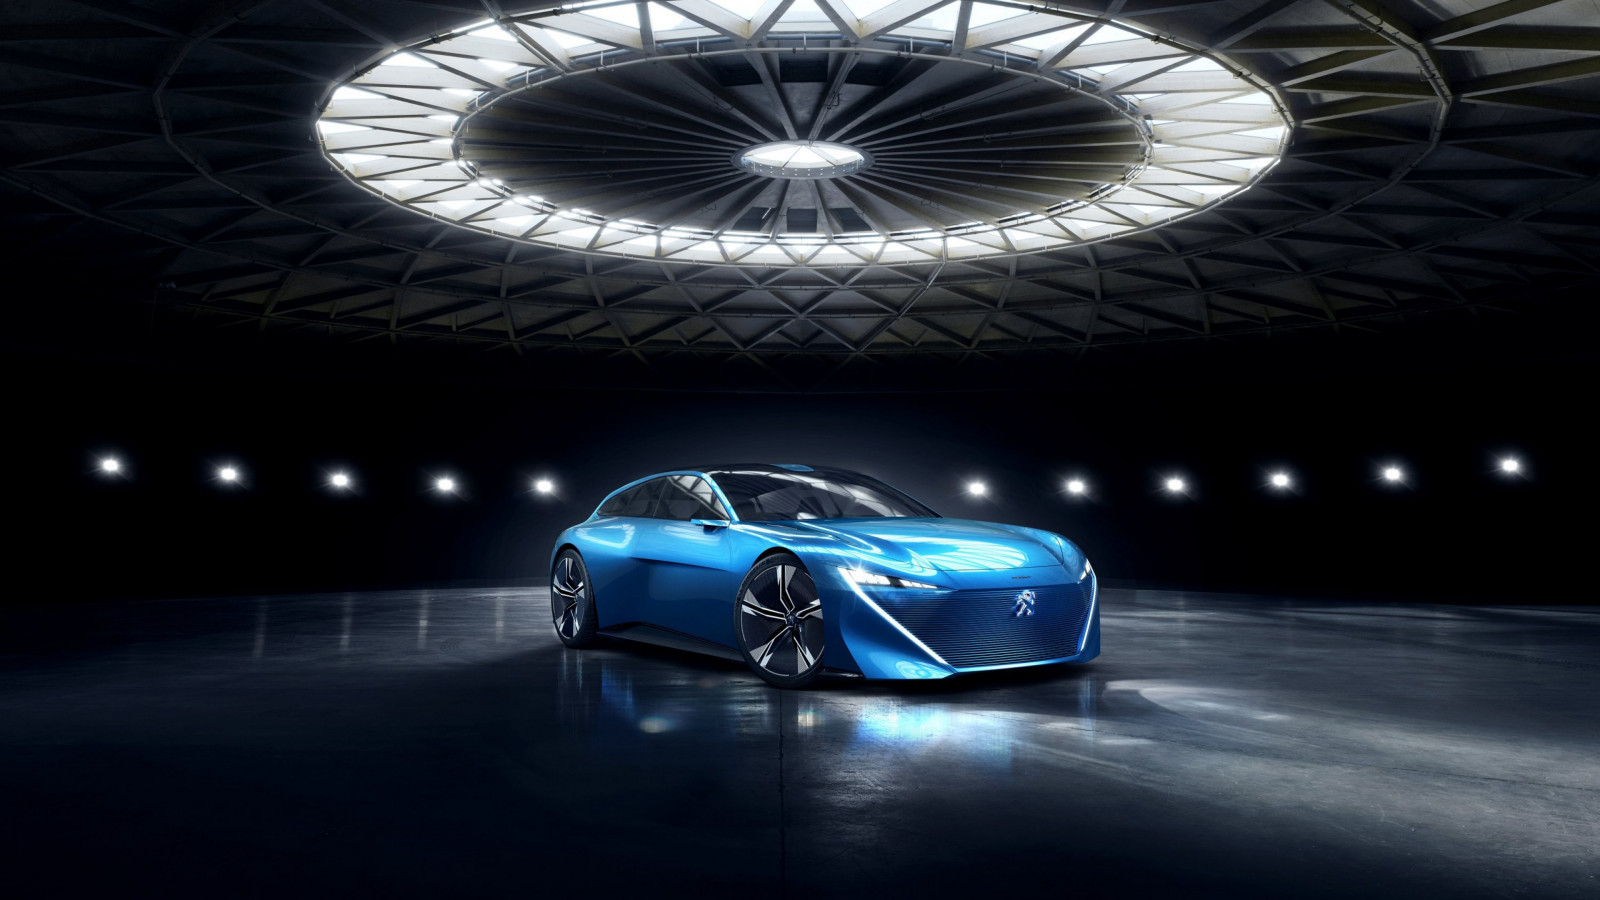 Peugeot Instinct wallpaper 1600x900